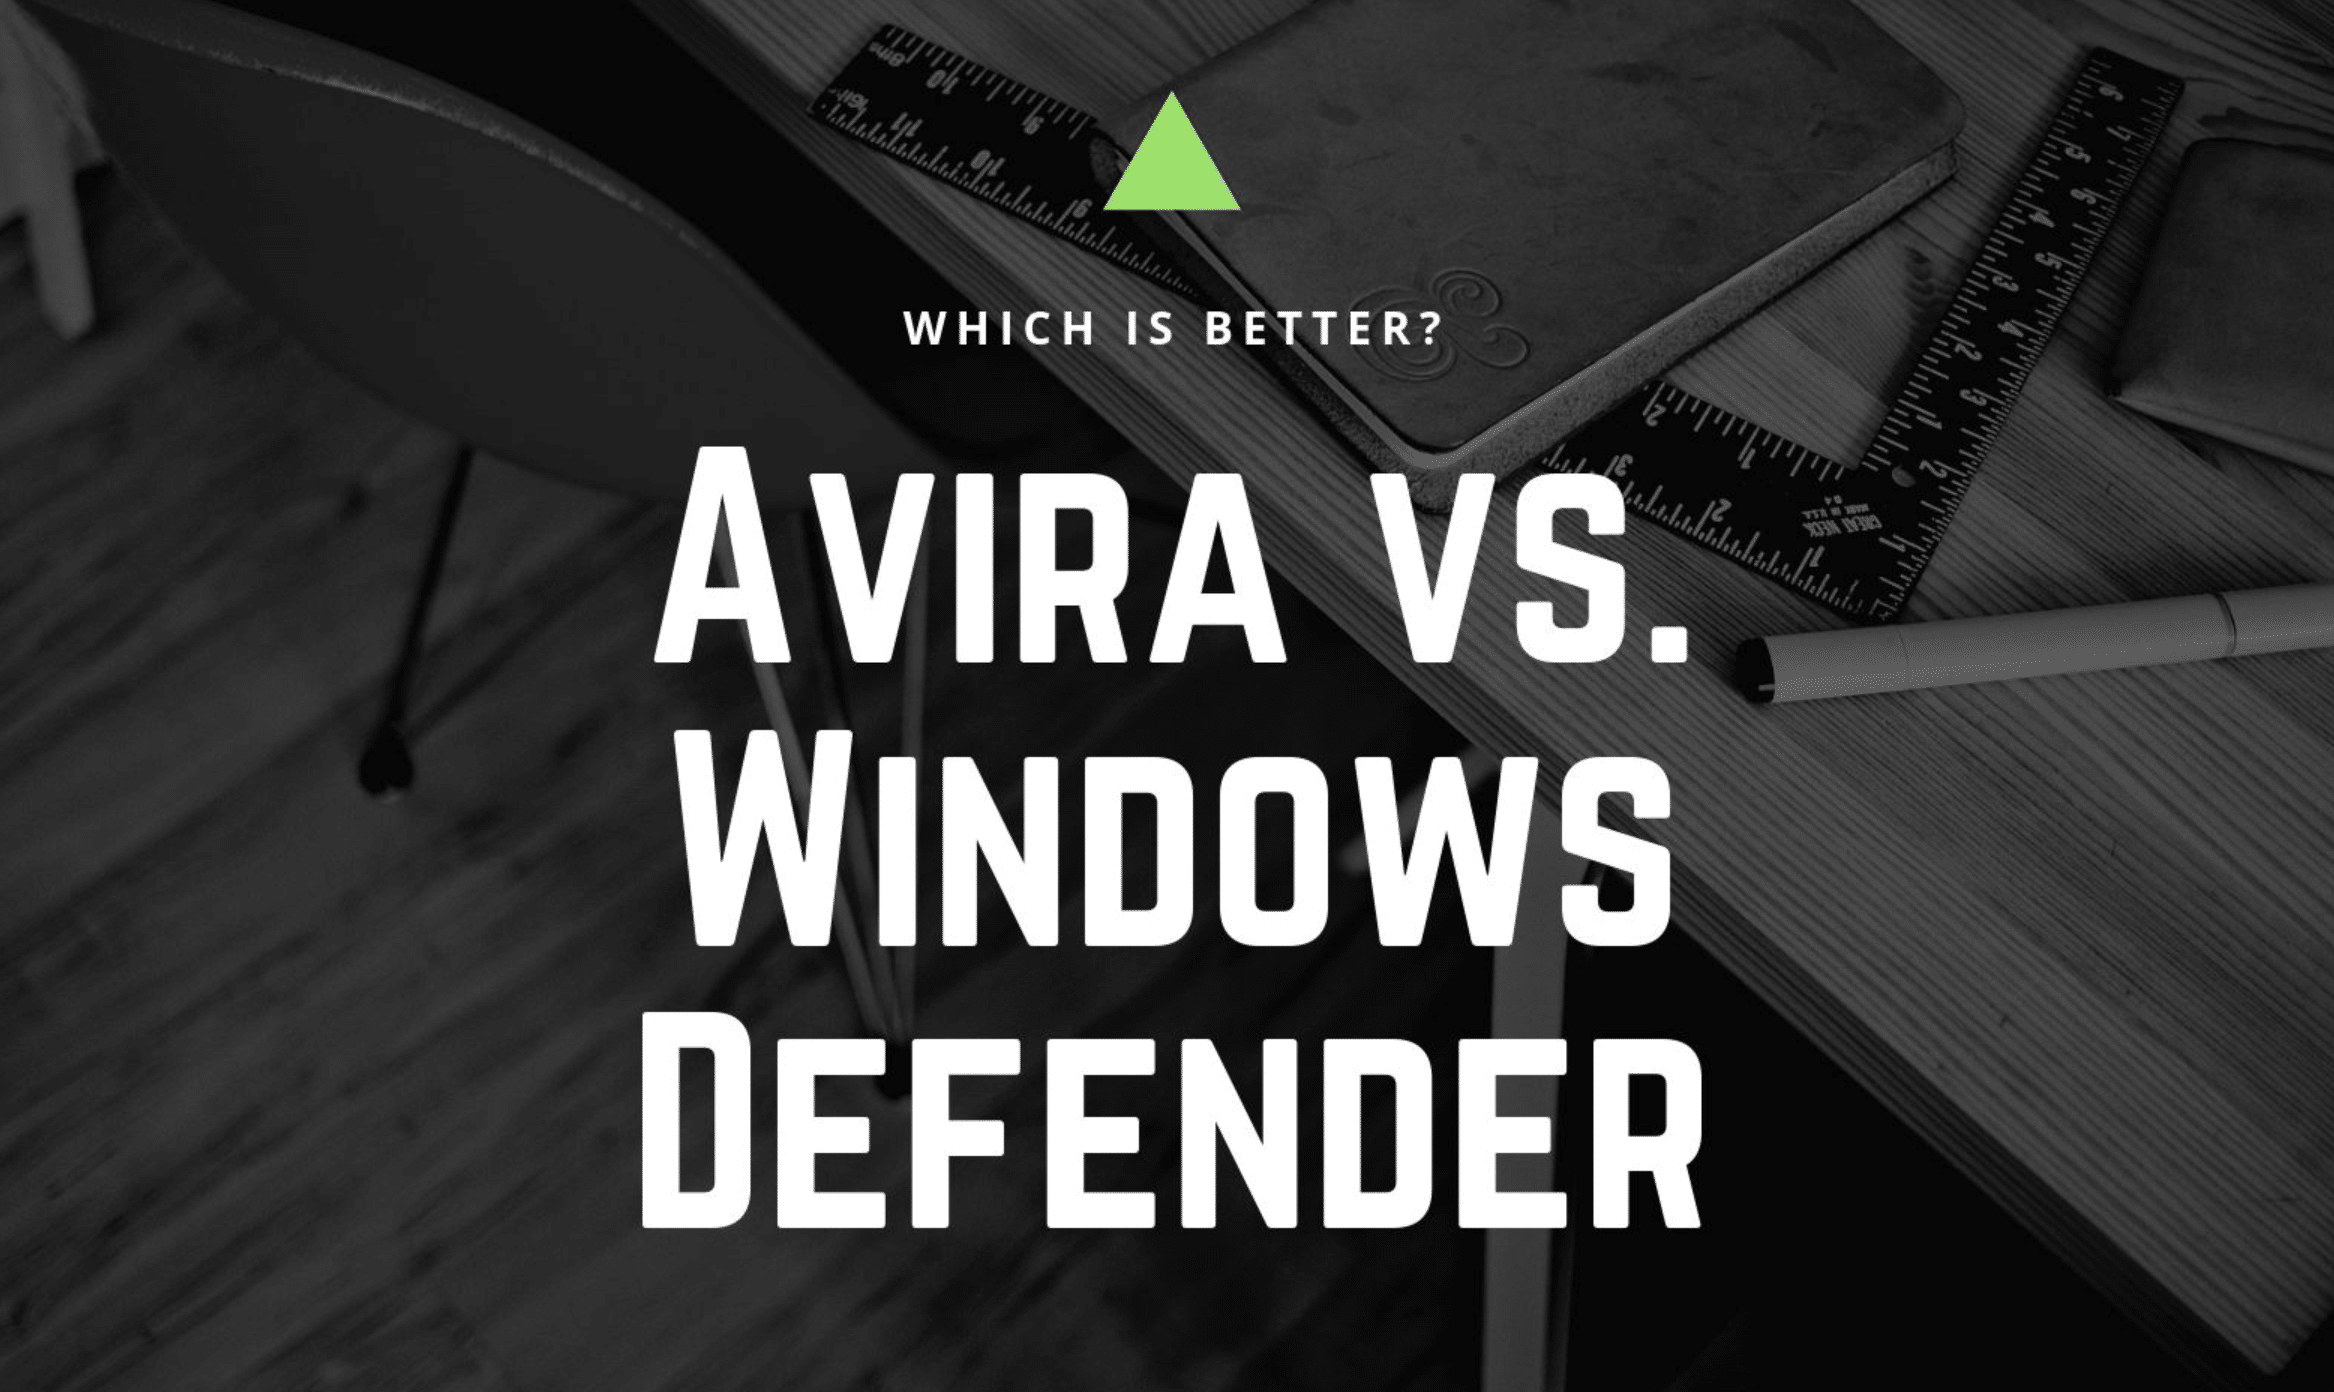 avira vs windows defender